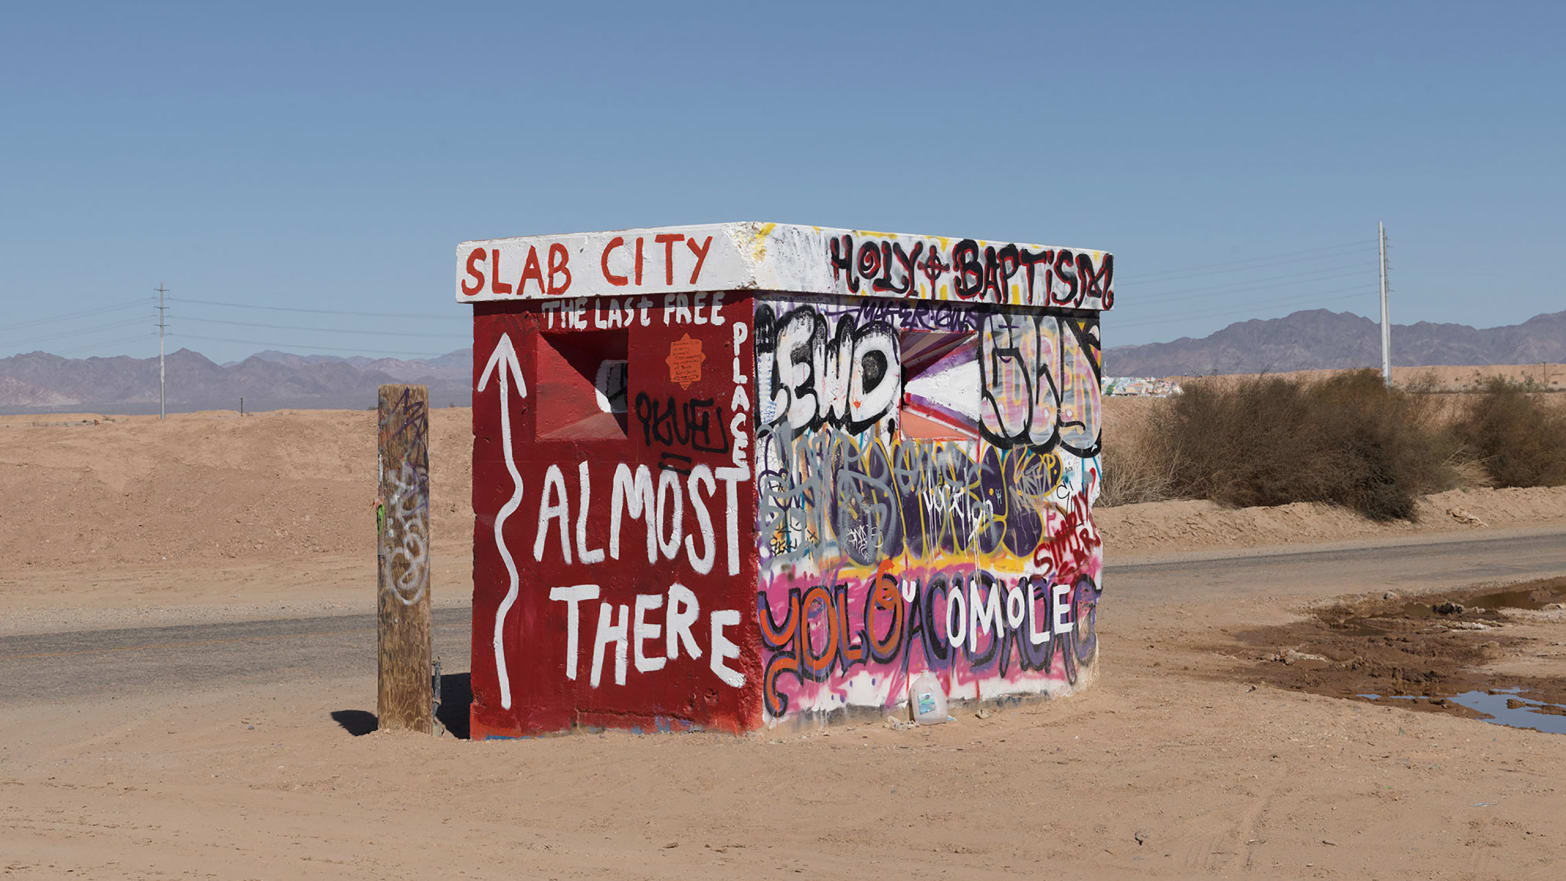 Slab City, California: Inside the Last Free Place in America